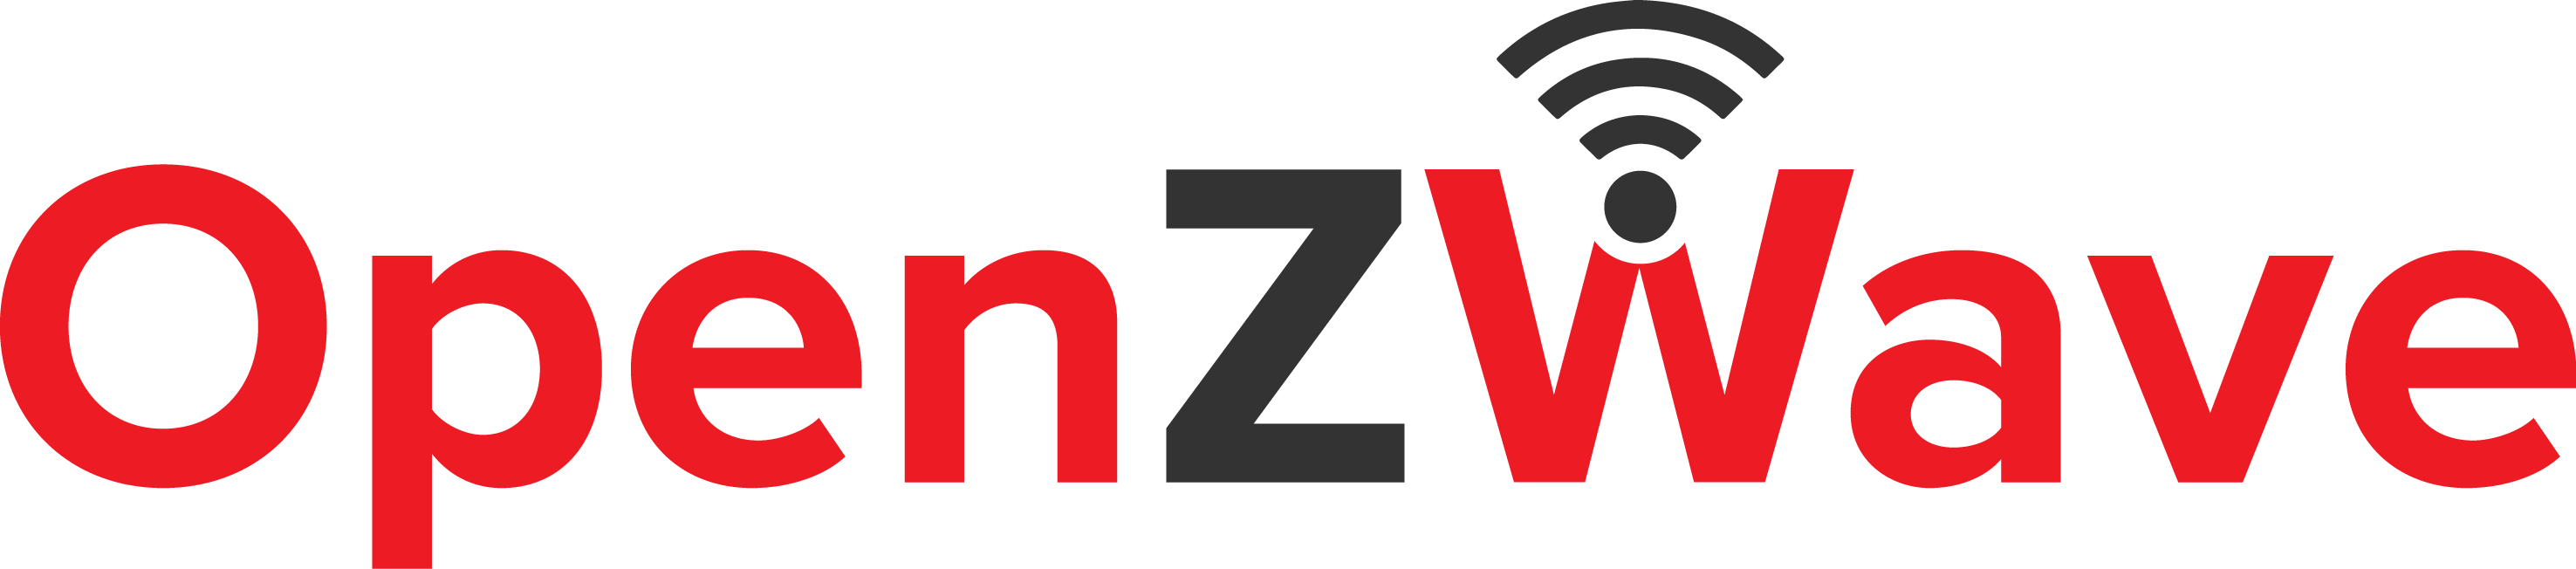 Open-ZWave Library